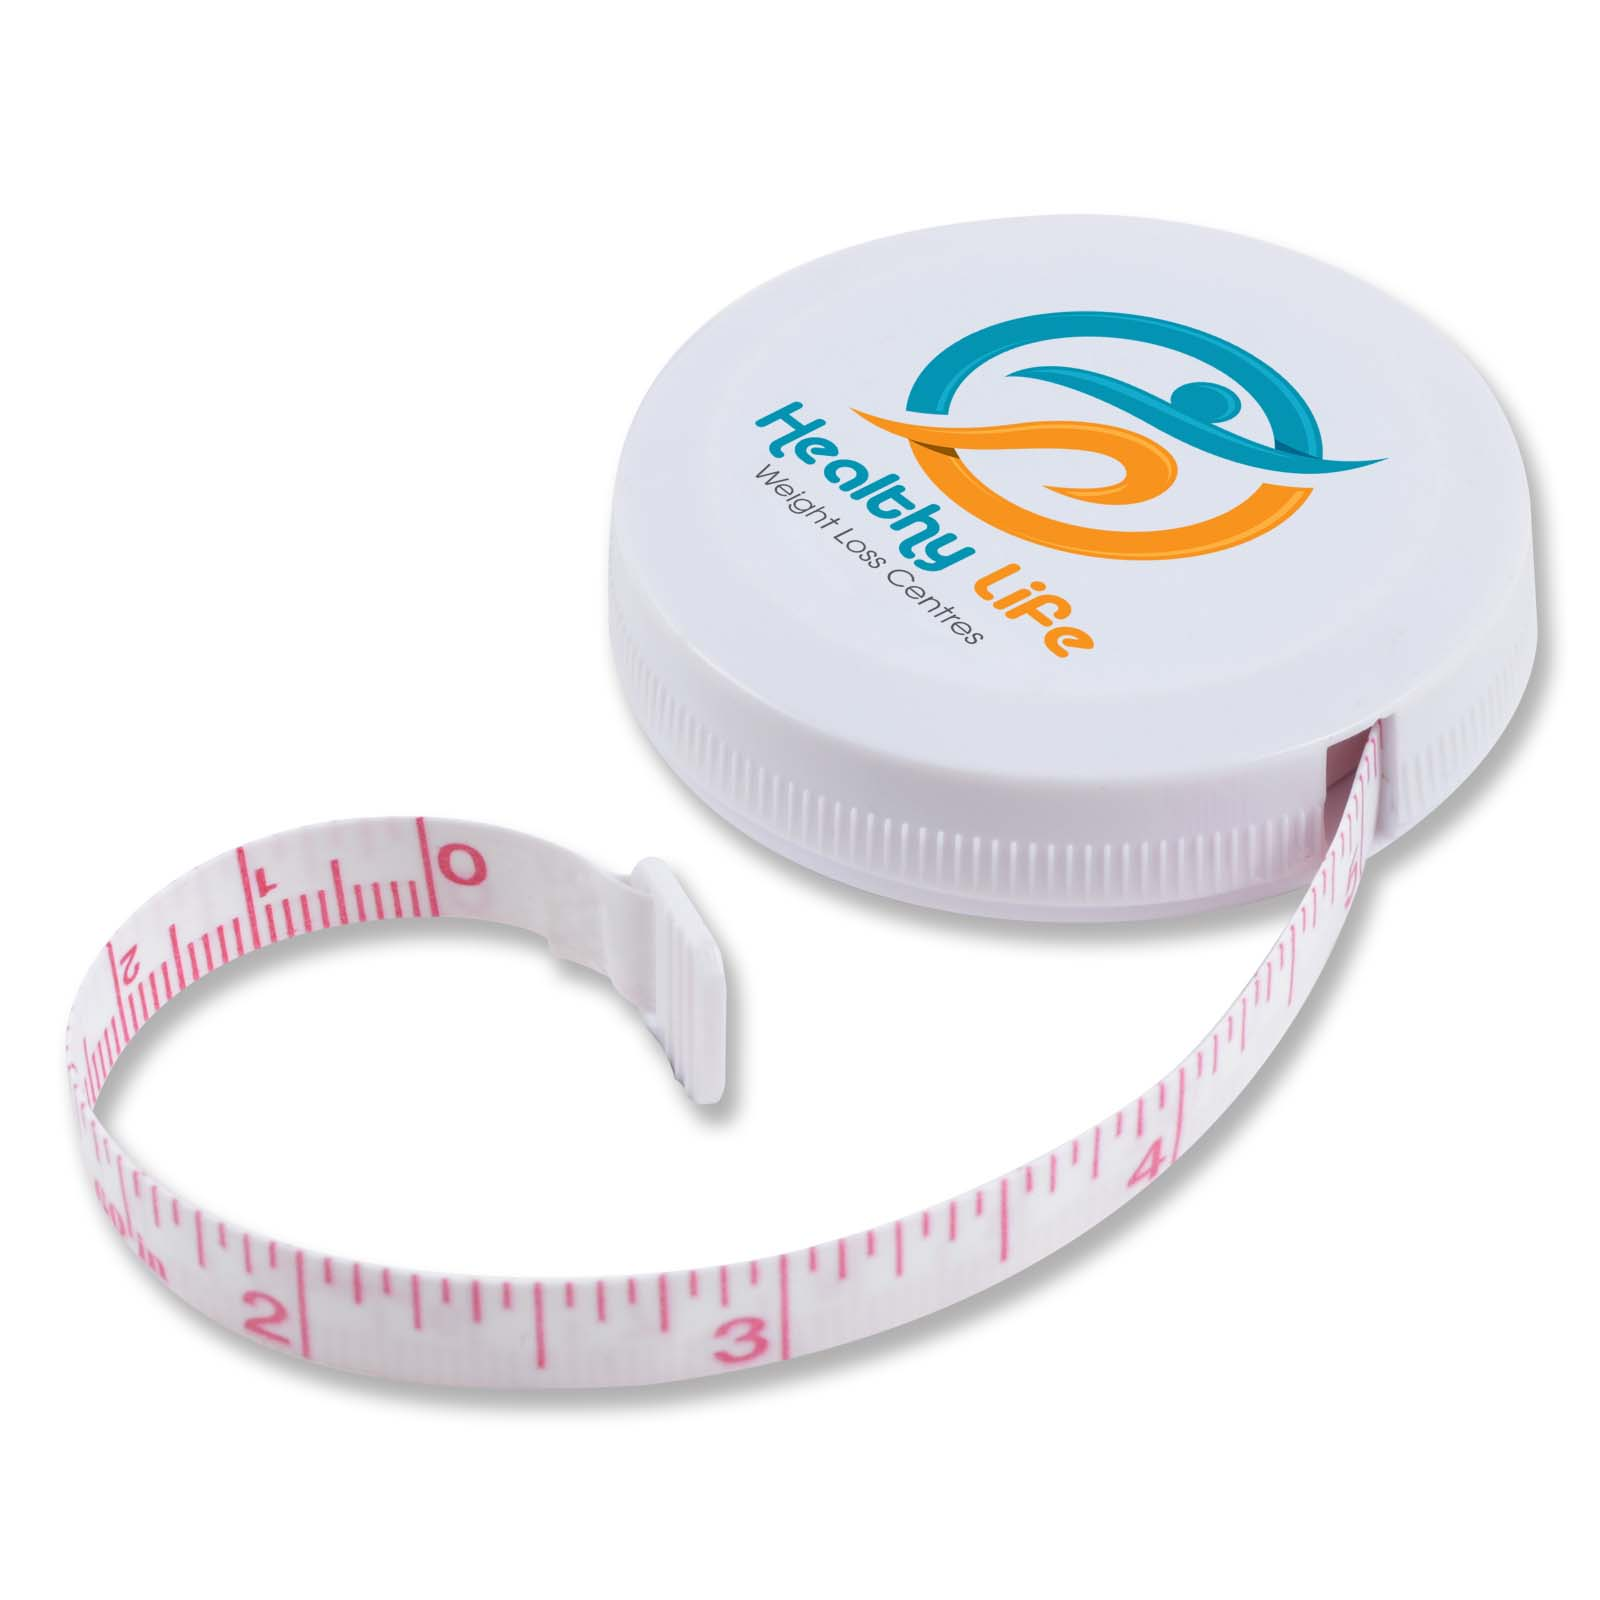 White Styleline Tape Measure - Includes a 1 colour printed logo